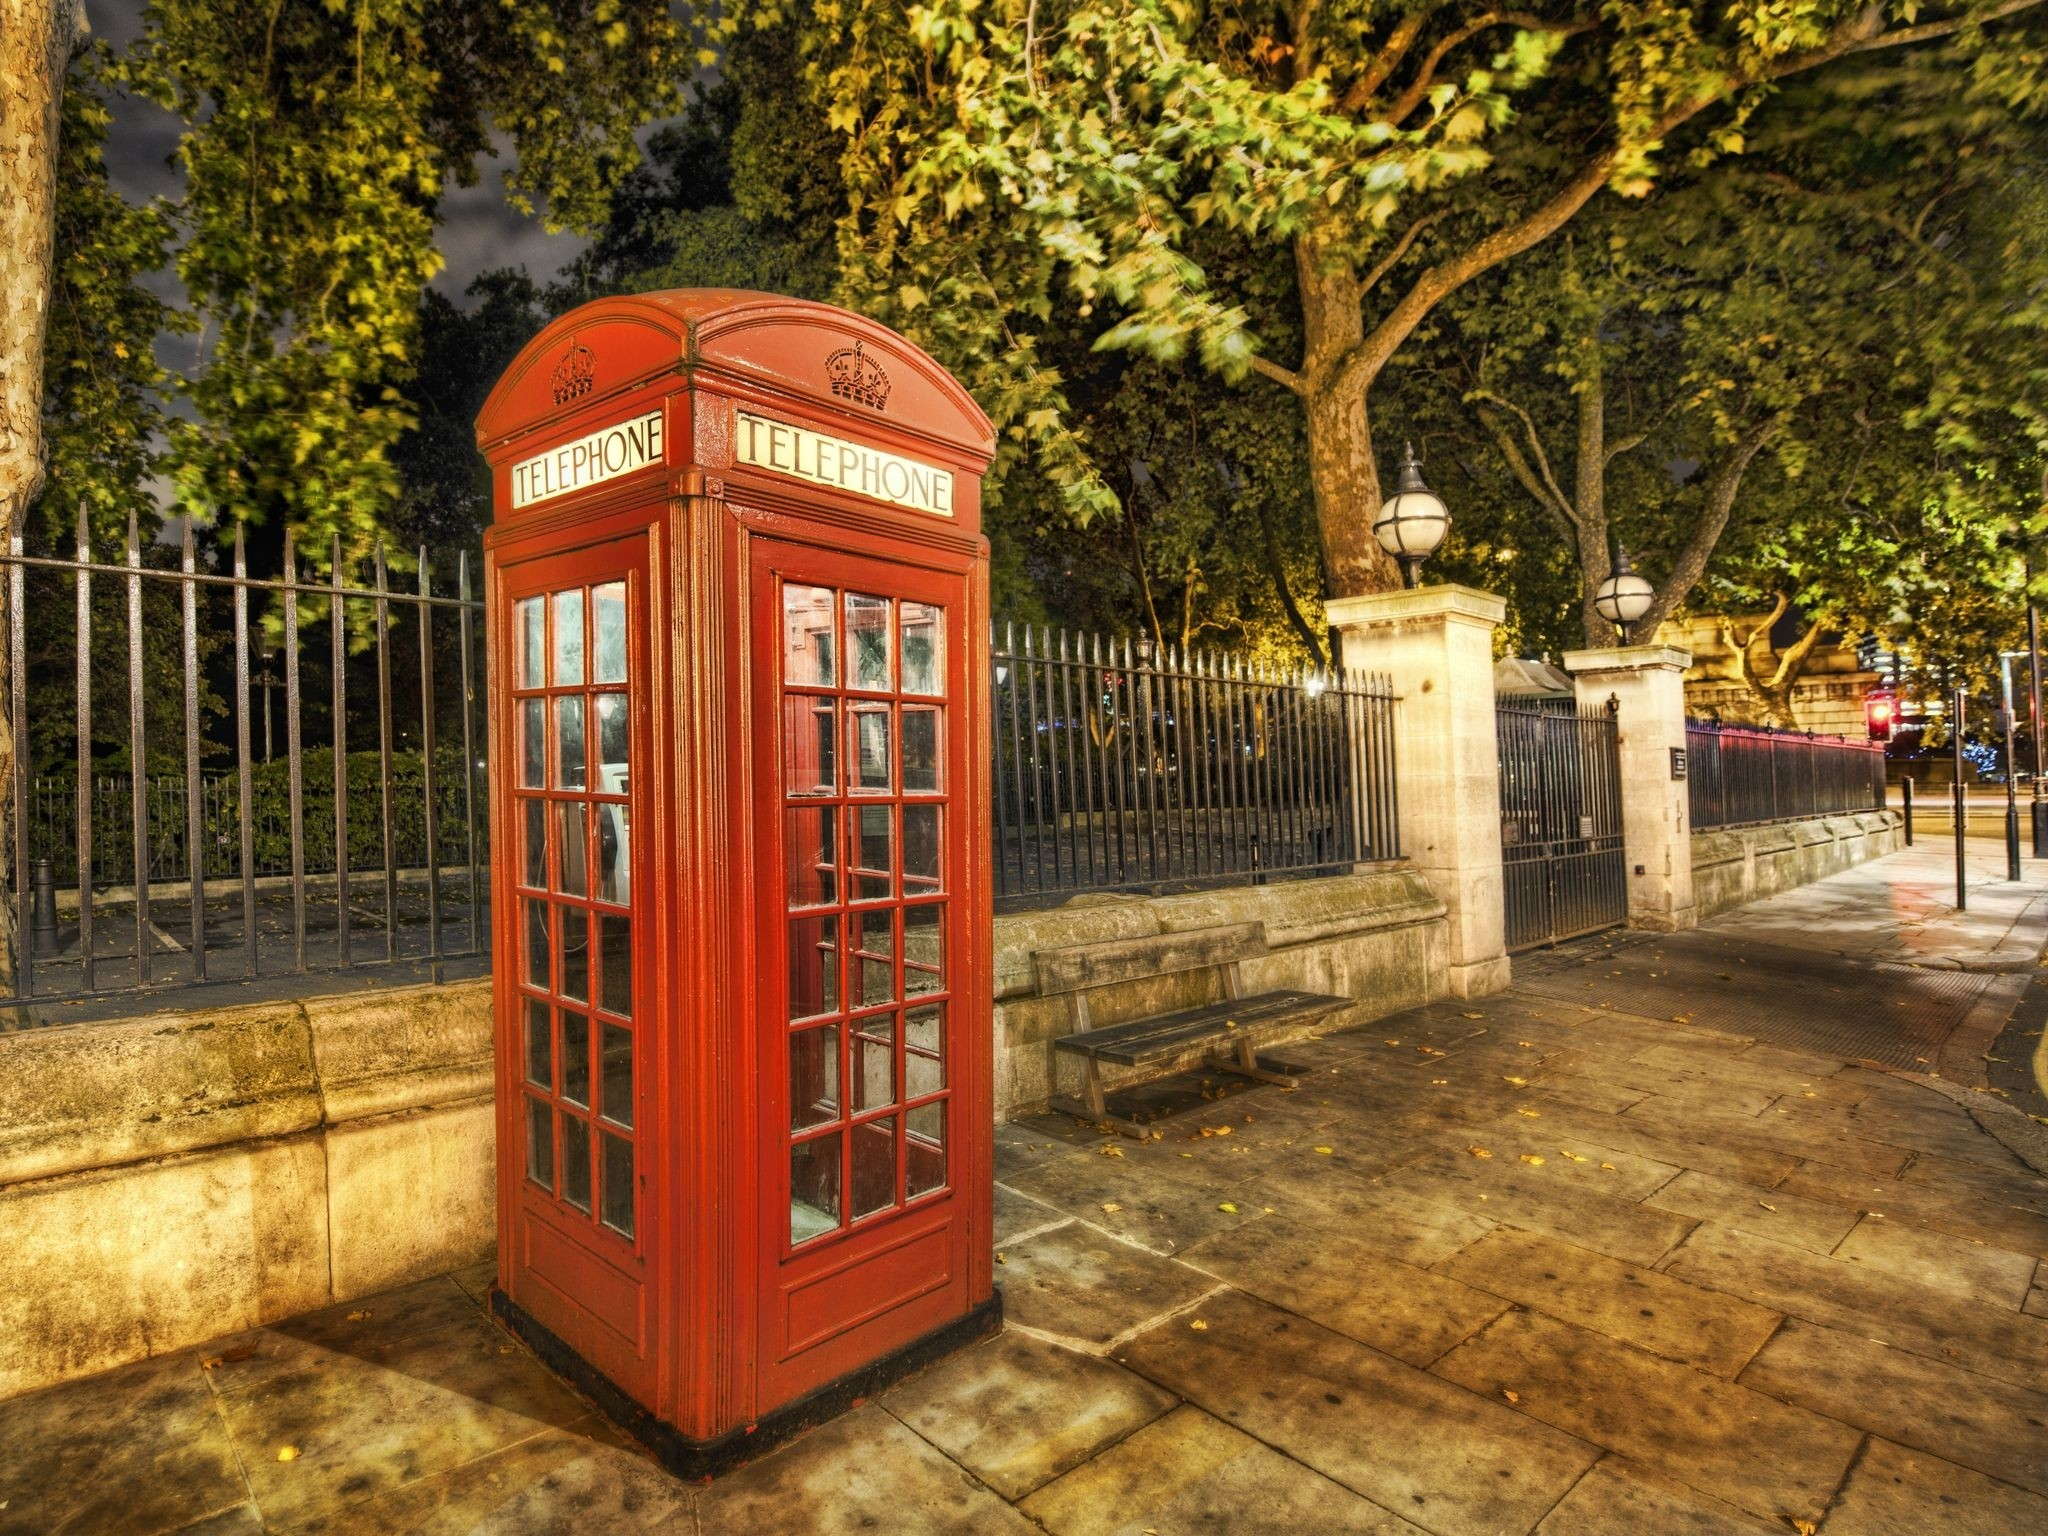 Wallpaper london, city, street, phone booth